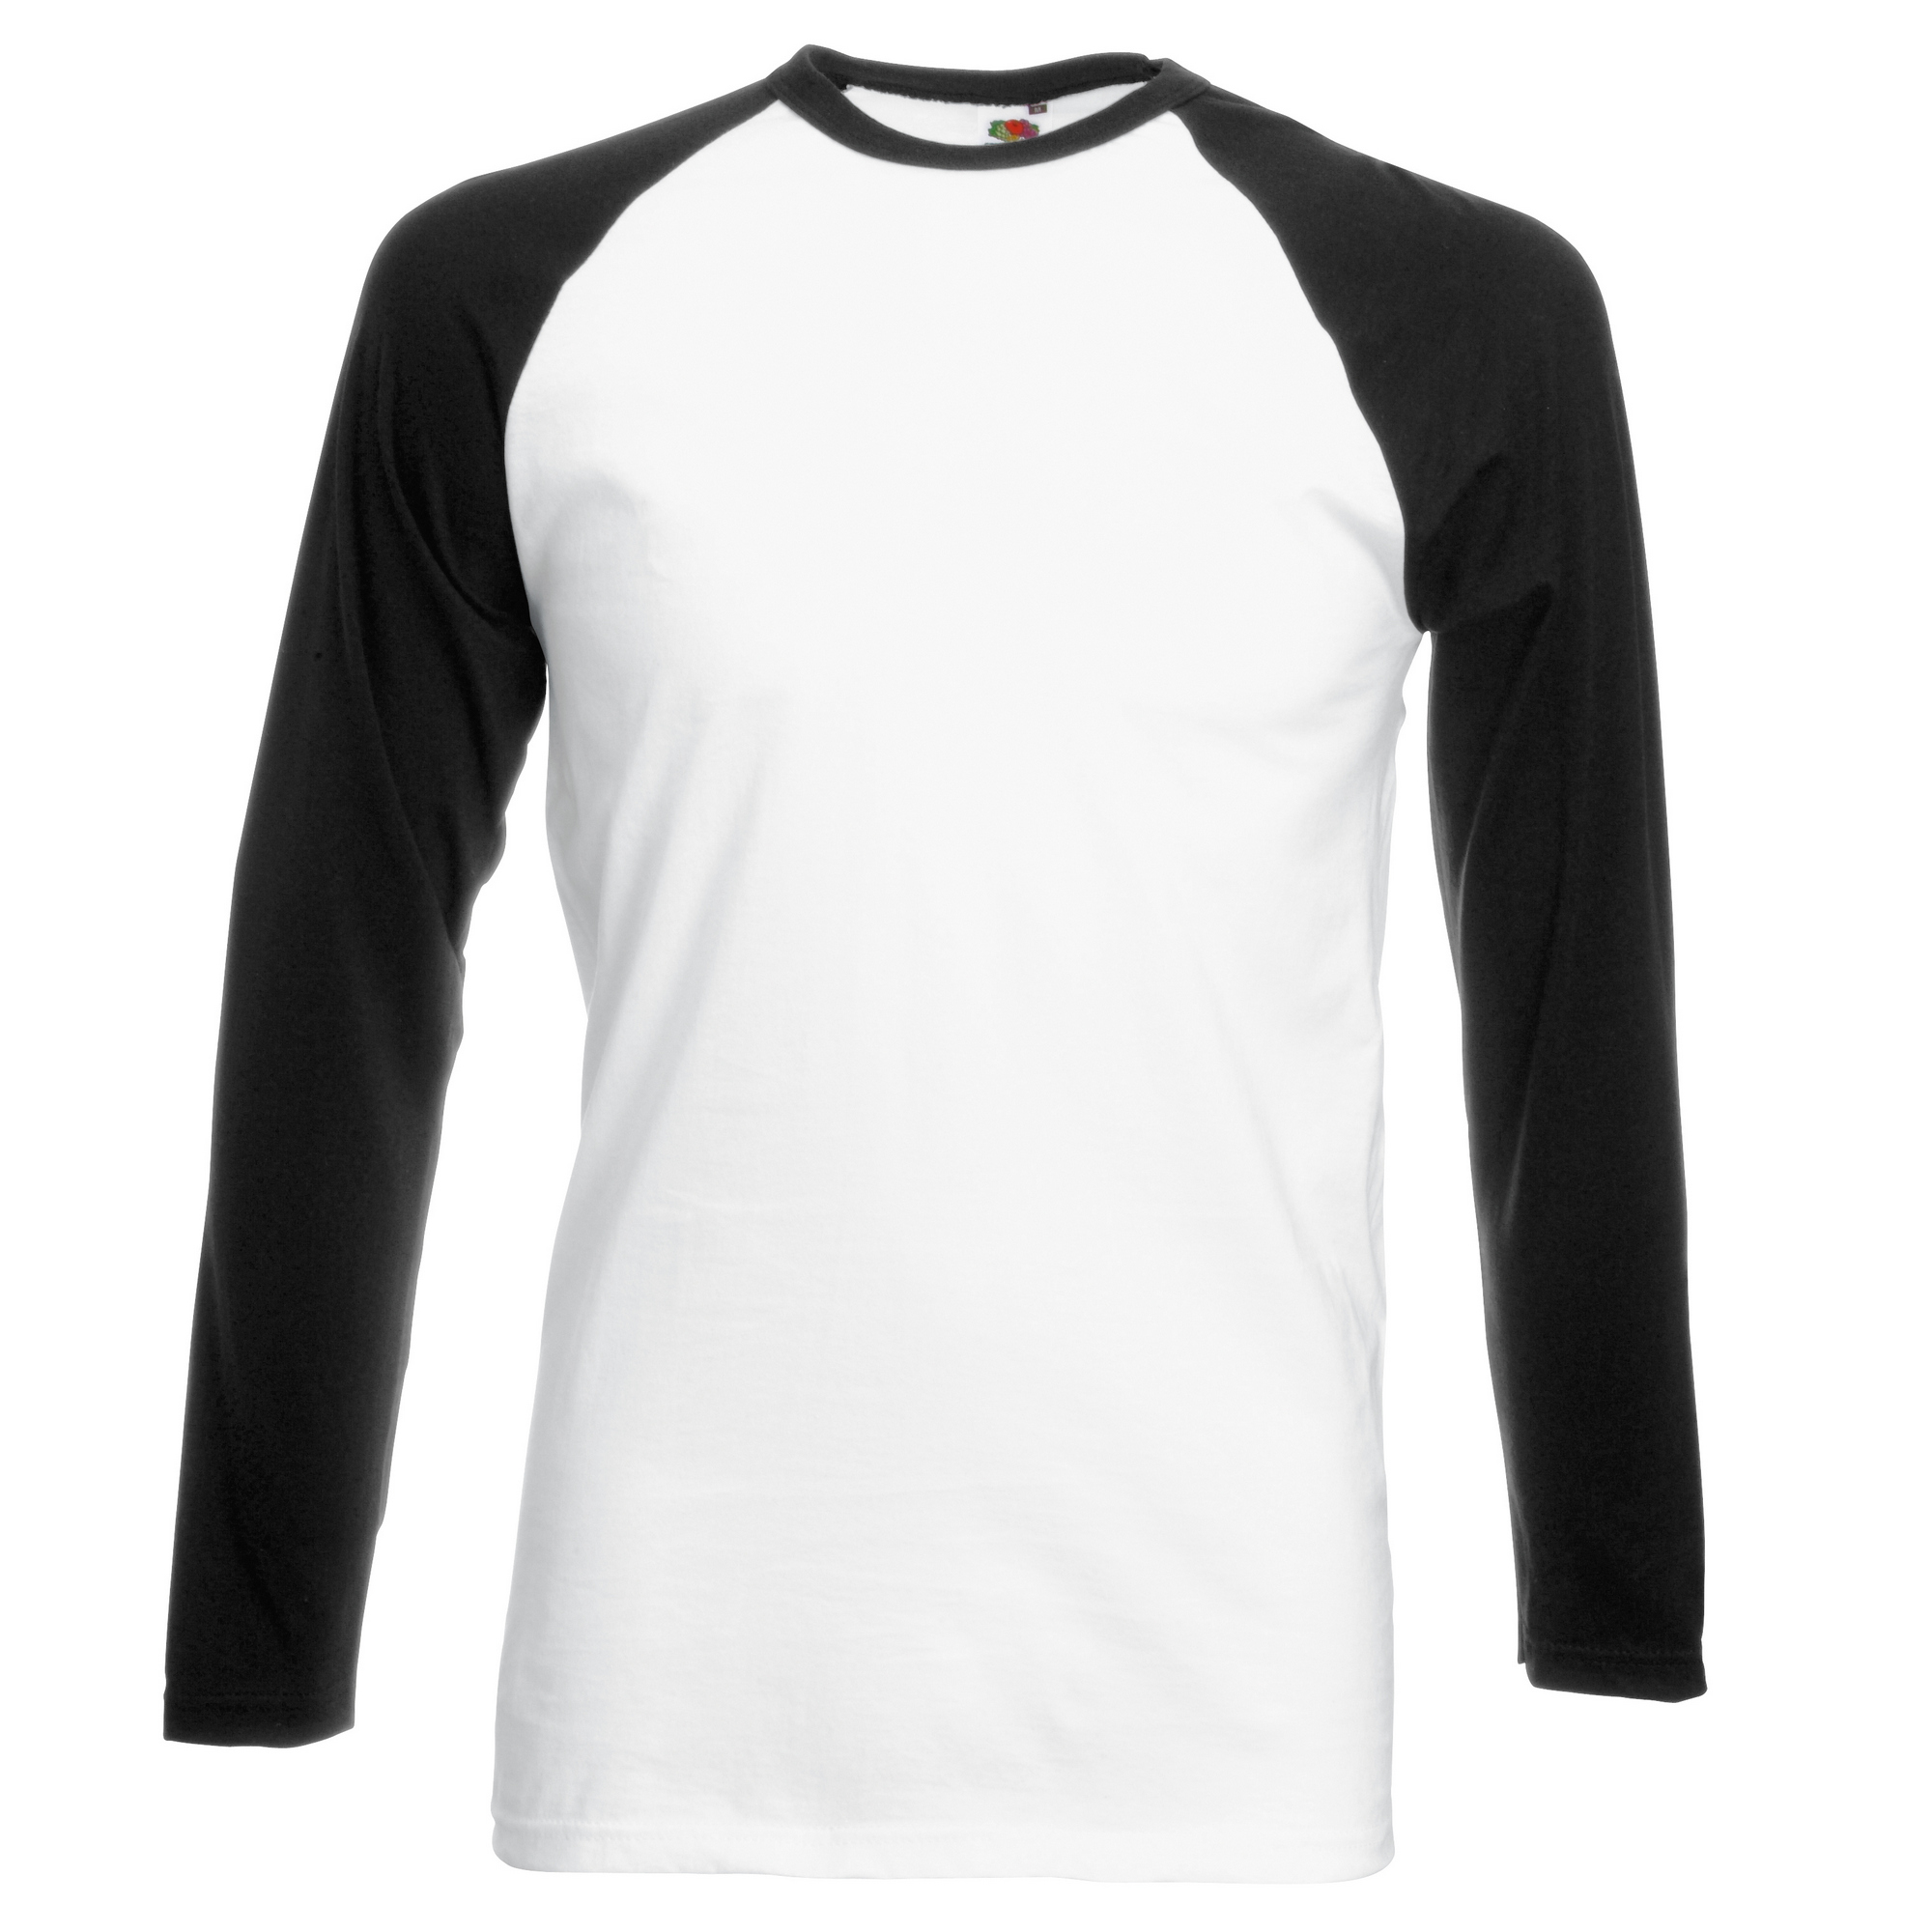 Create custom long sleeve t-shirts for your group or team. You can even put designs All-Inclusive Pricing · Always Free Shipping · Top Workplaces · Free Expert Help & ReviewTypes: T-Shirts, Koozies, Hoodies, Tank Tops, Polos, Hats, Headphones, Tote Bags, Mugs.